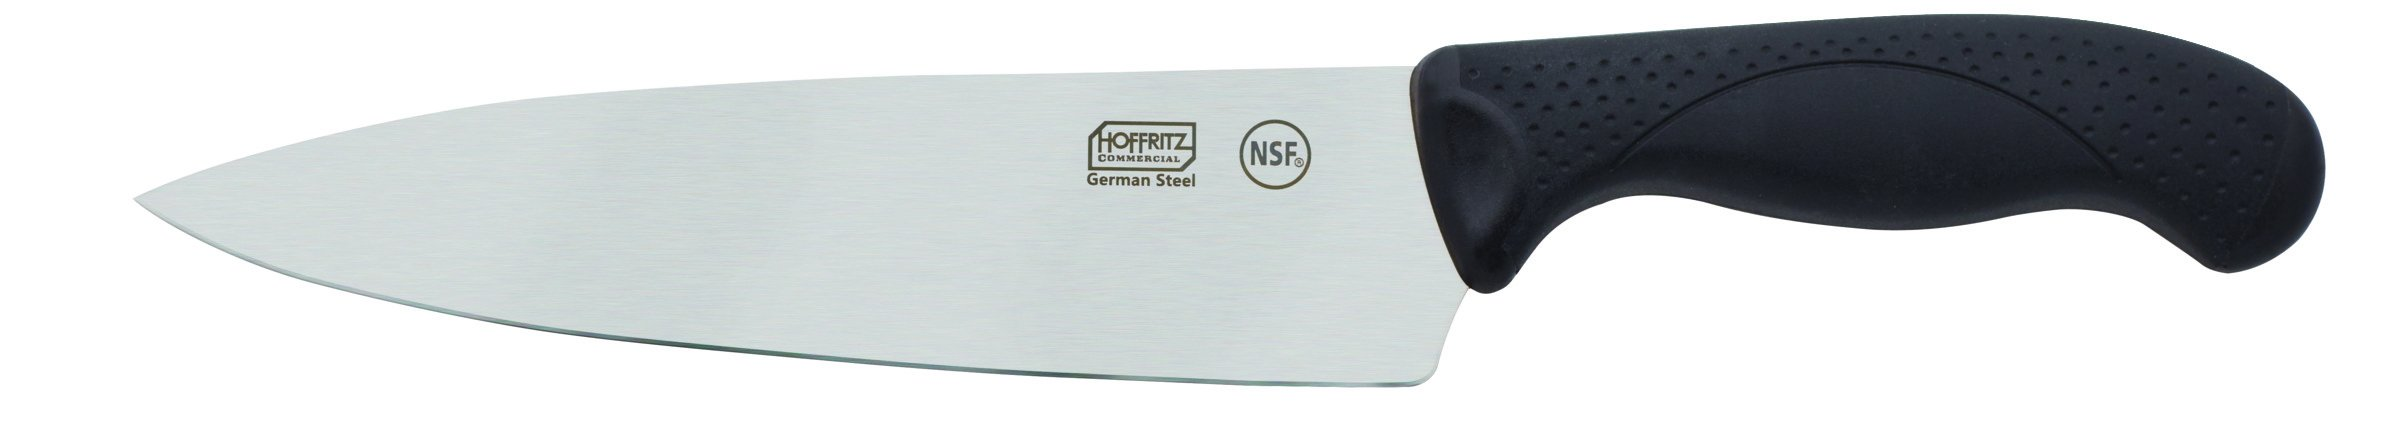 Hoffritz 5190089 Commercial Top Rated German Steel Chef Knife with Non-Slip Handle for Home and Professional Use, 8-Inch, Black